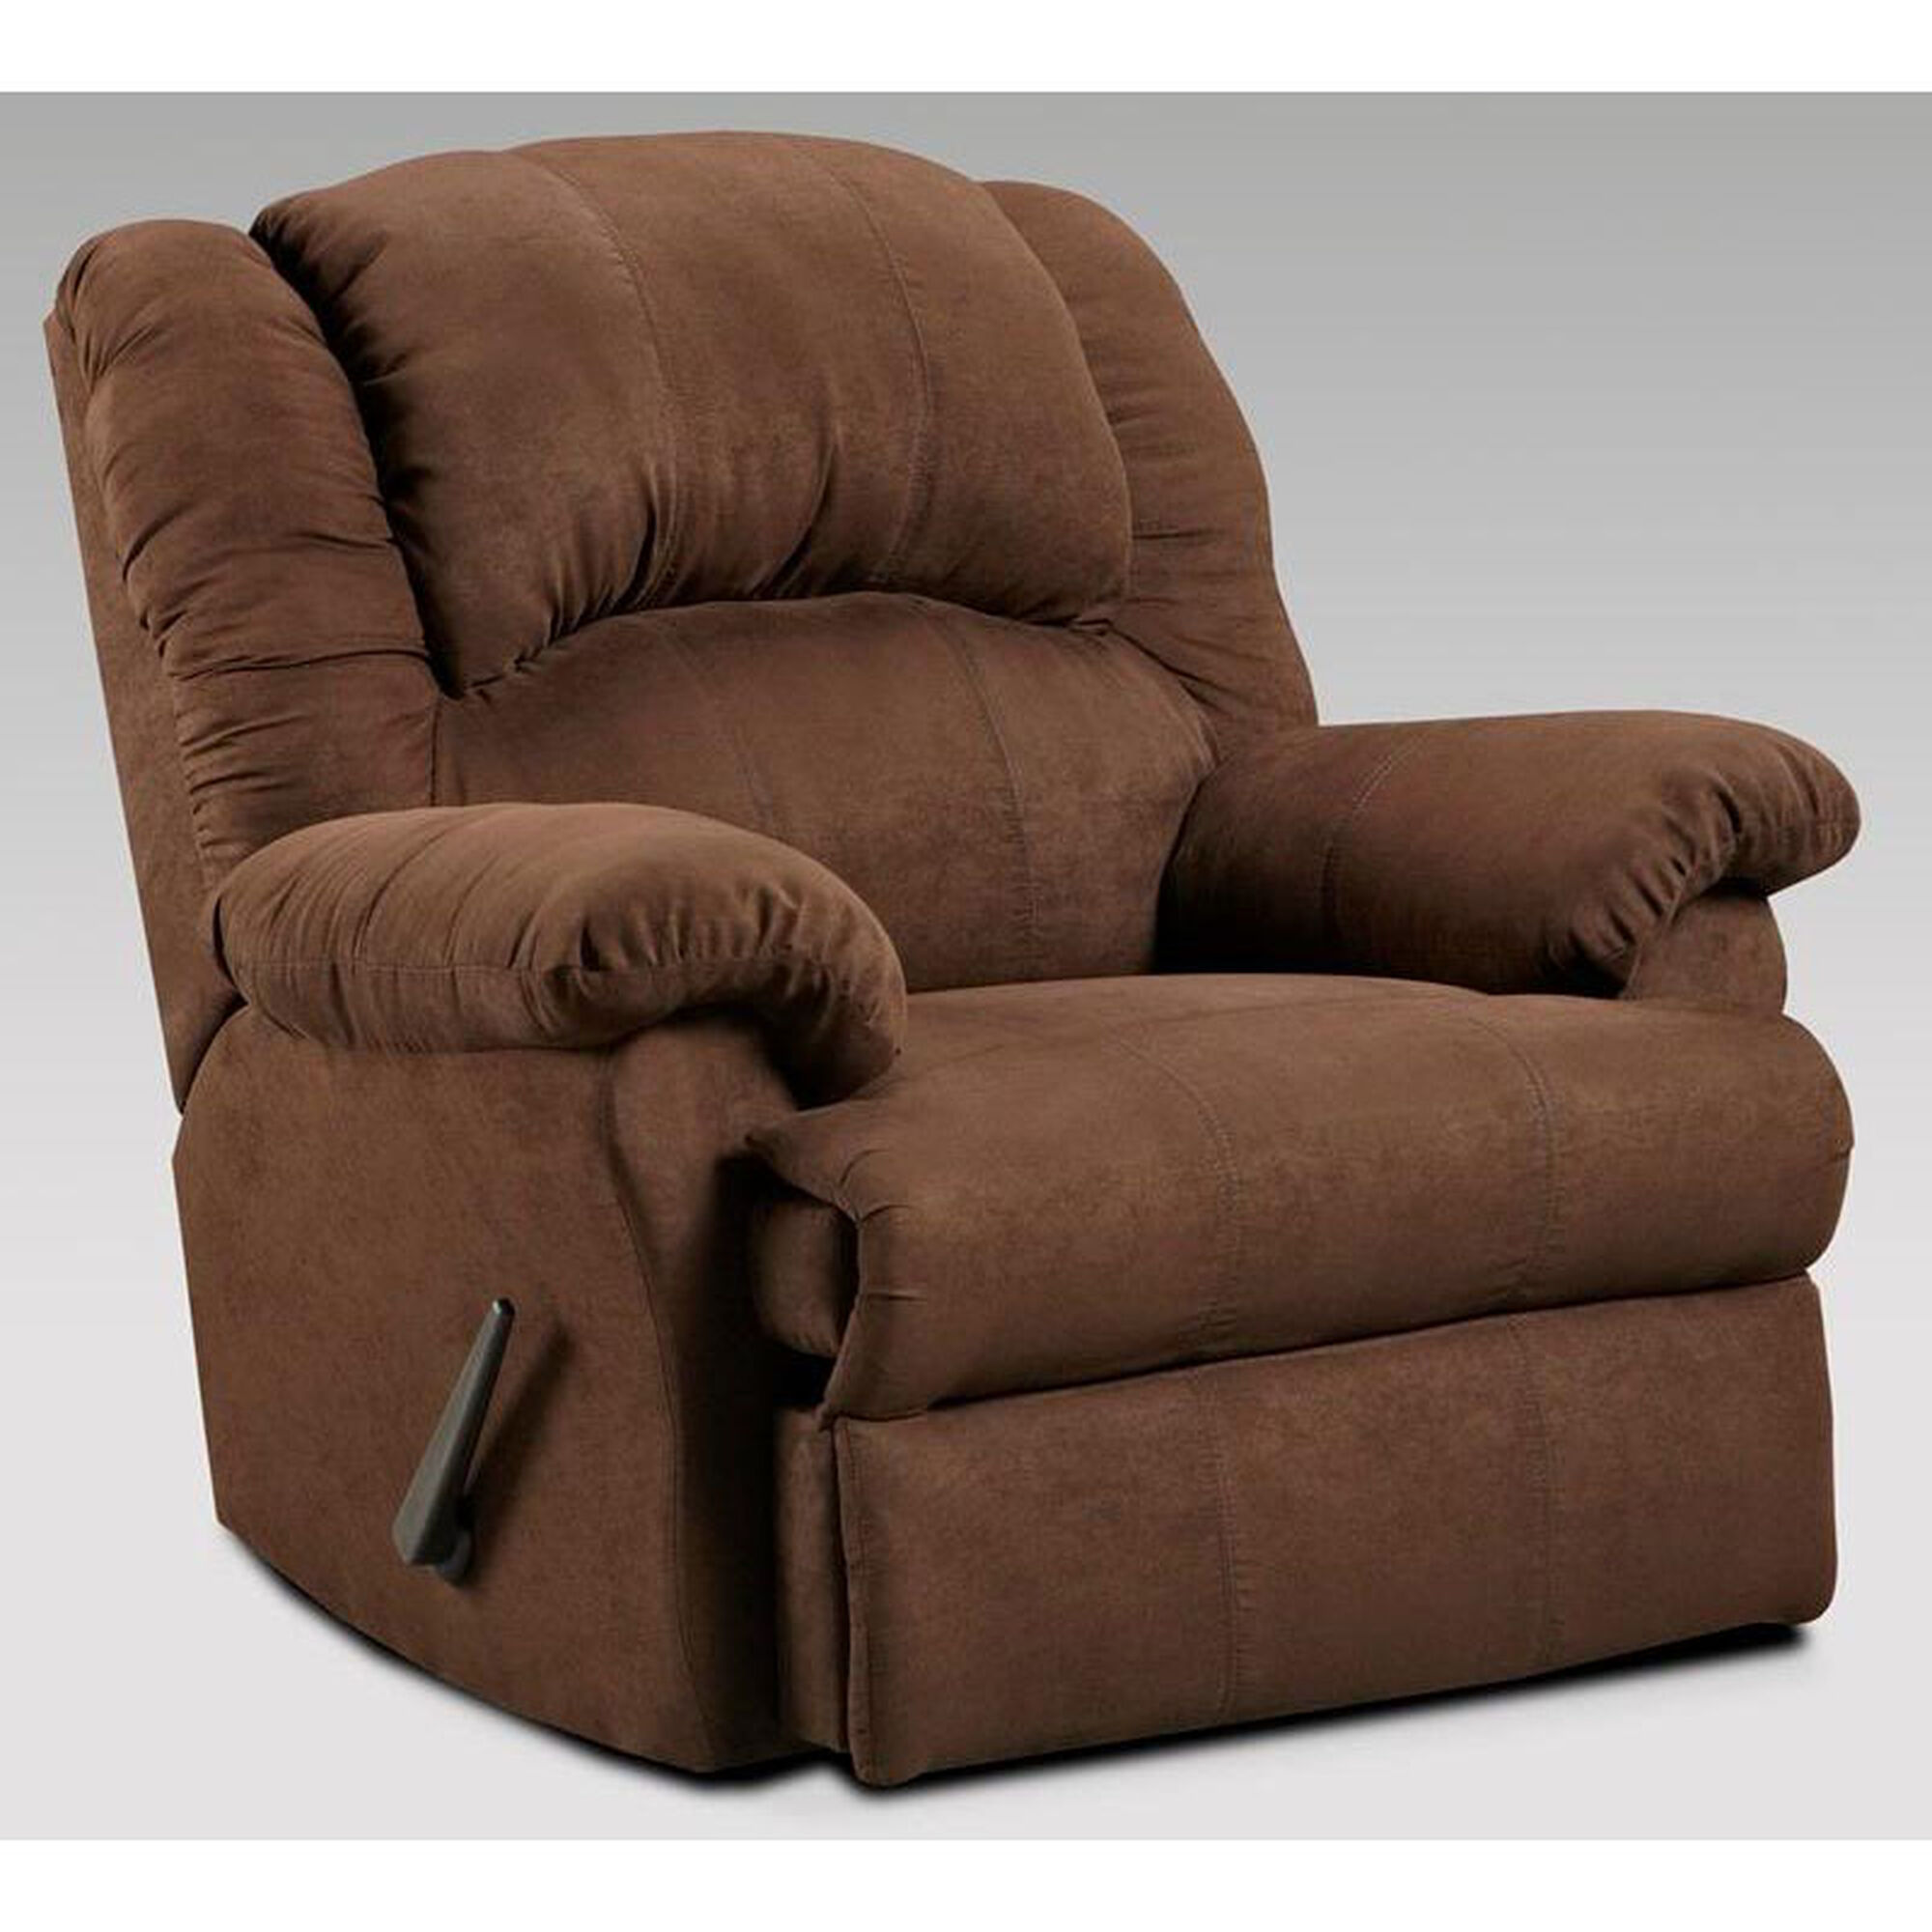 Chelsea home furniture 2001 ac chel - Stylish rocker recliner ...